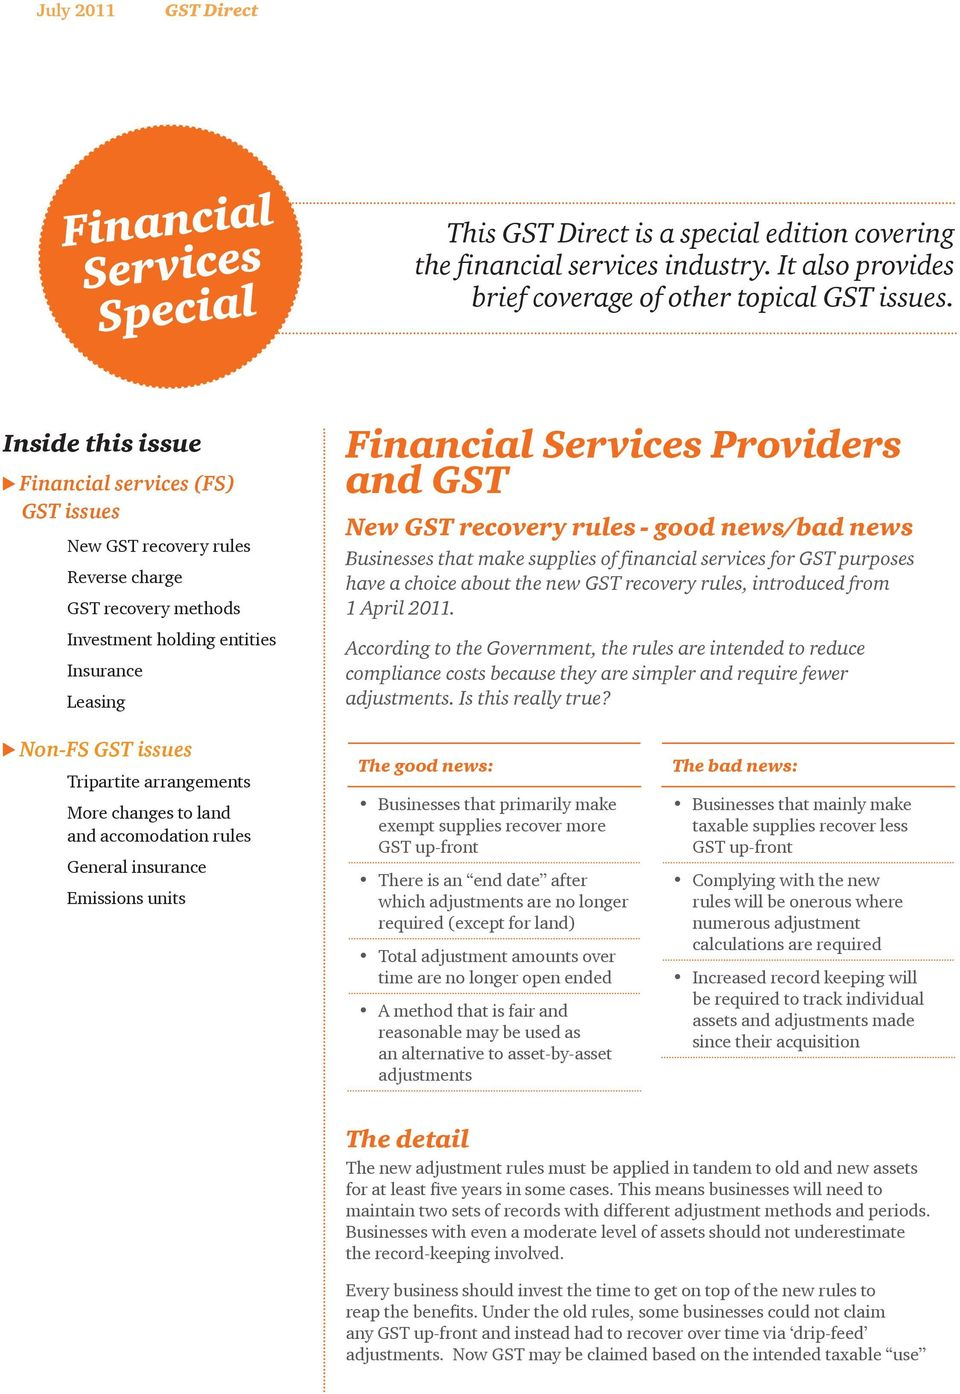 GST recovery rules - good news/bad news Businesses that make supplies of financial services for GST purposes have a choice about the new GST recovery rules, introduced from 1 April 2011.